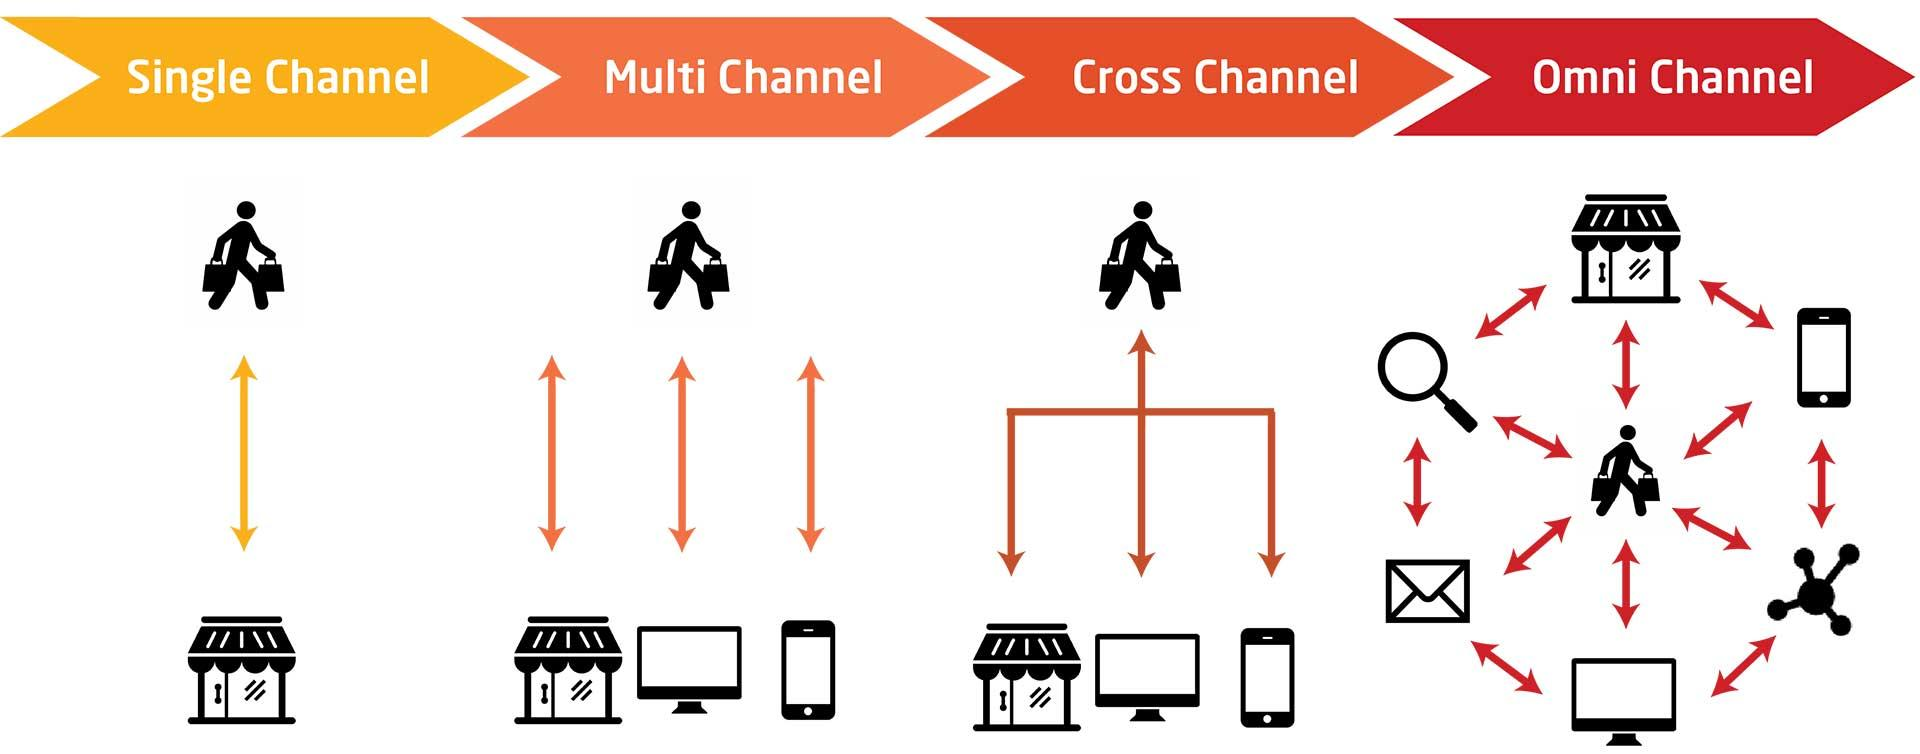 integrate-multichannel-knexus